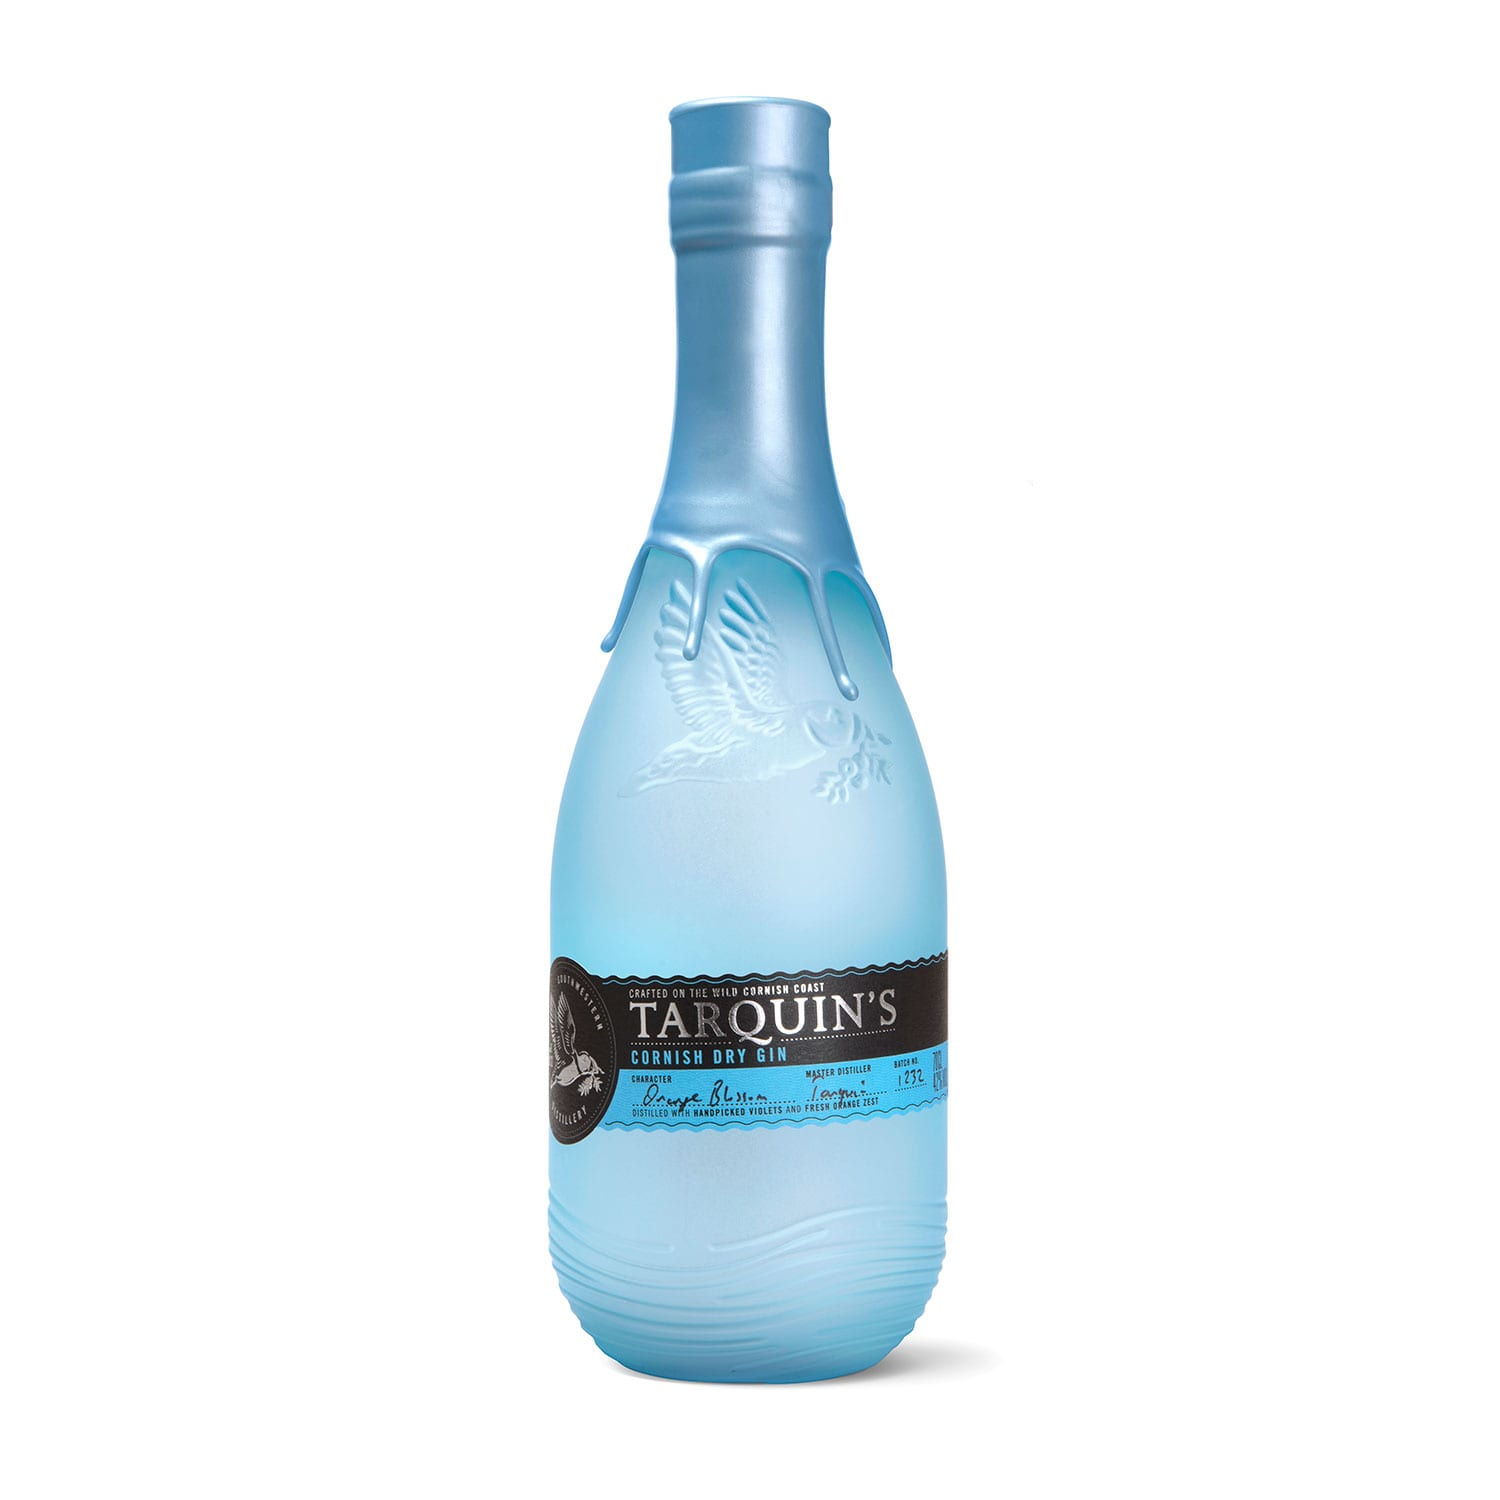 Tarquin's Cornish Gin